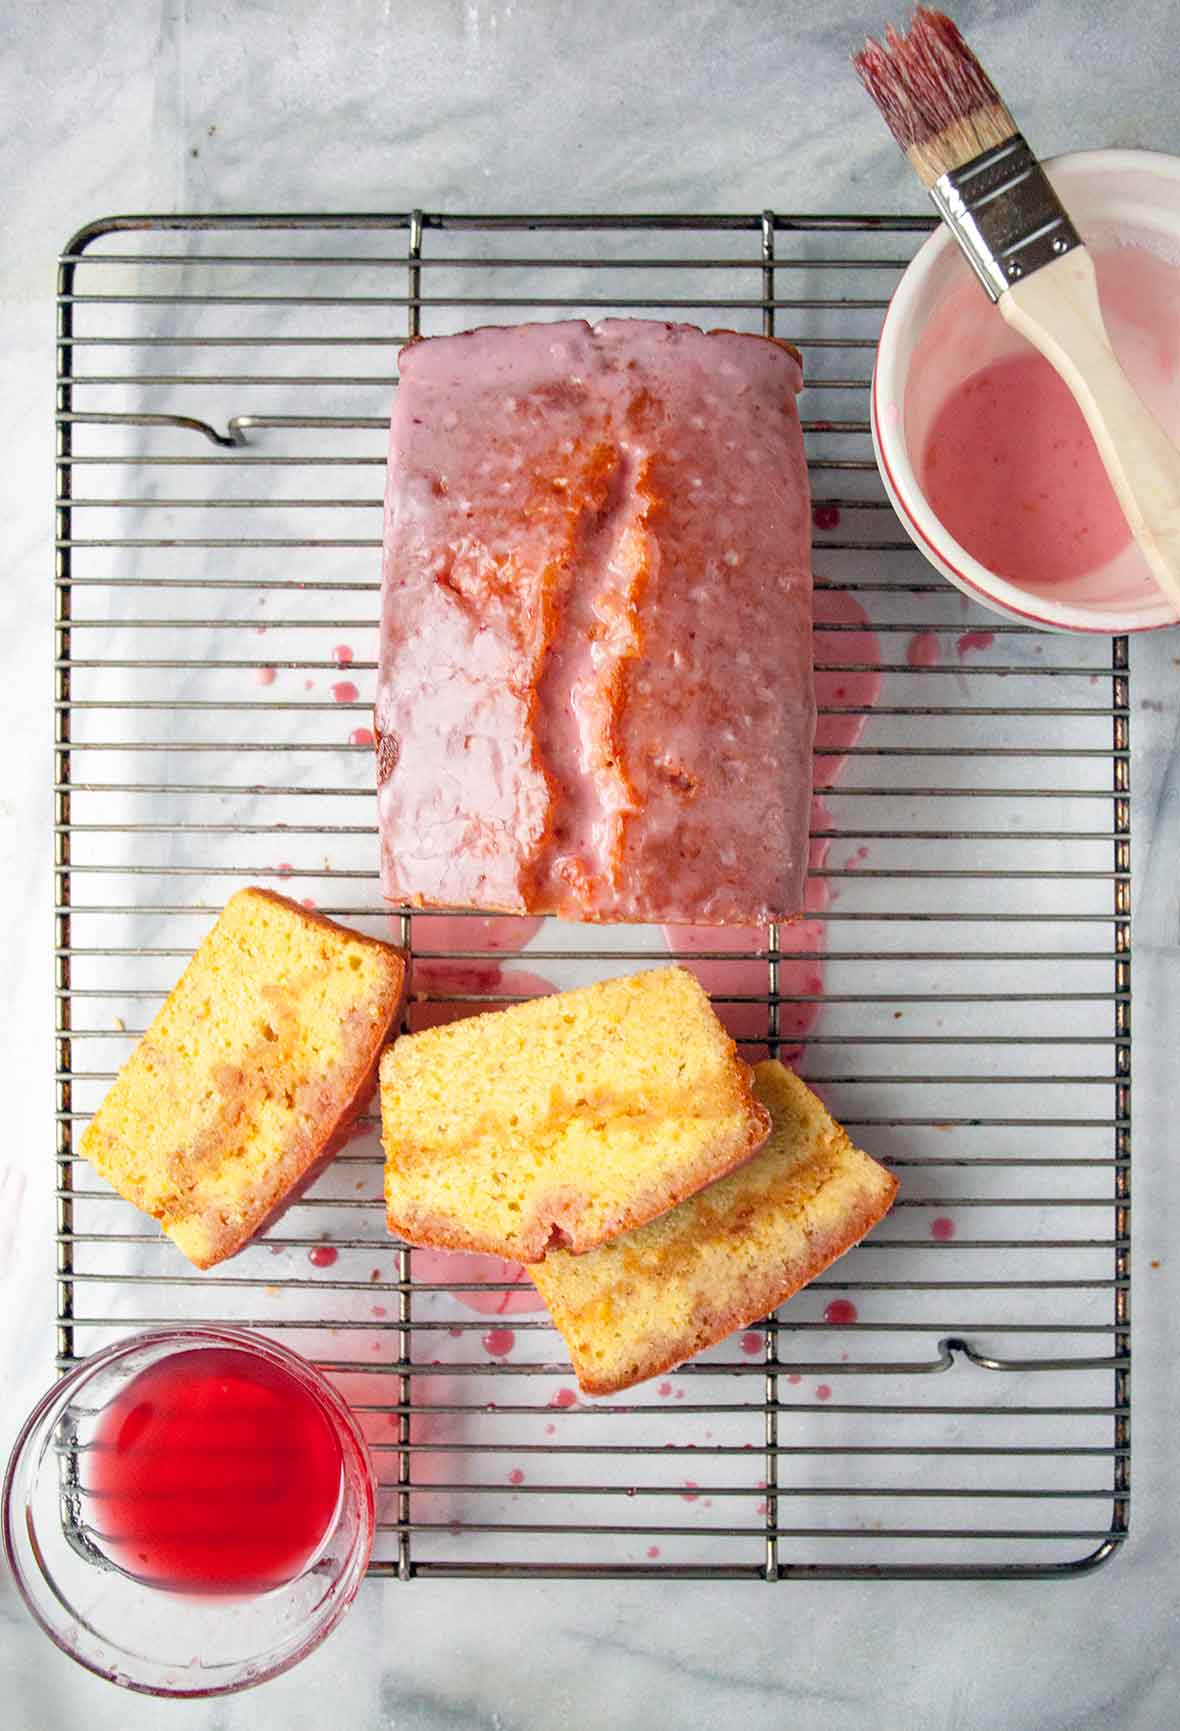 A blood orange pound cake on a wire rack with glaze and sugar syrup, three slices cut